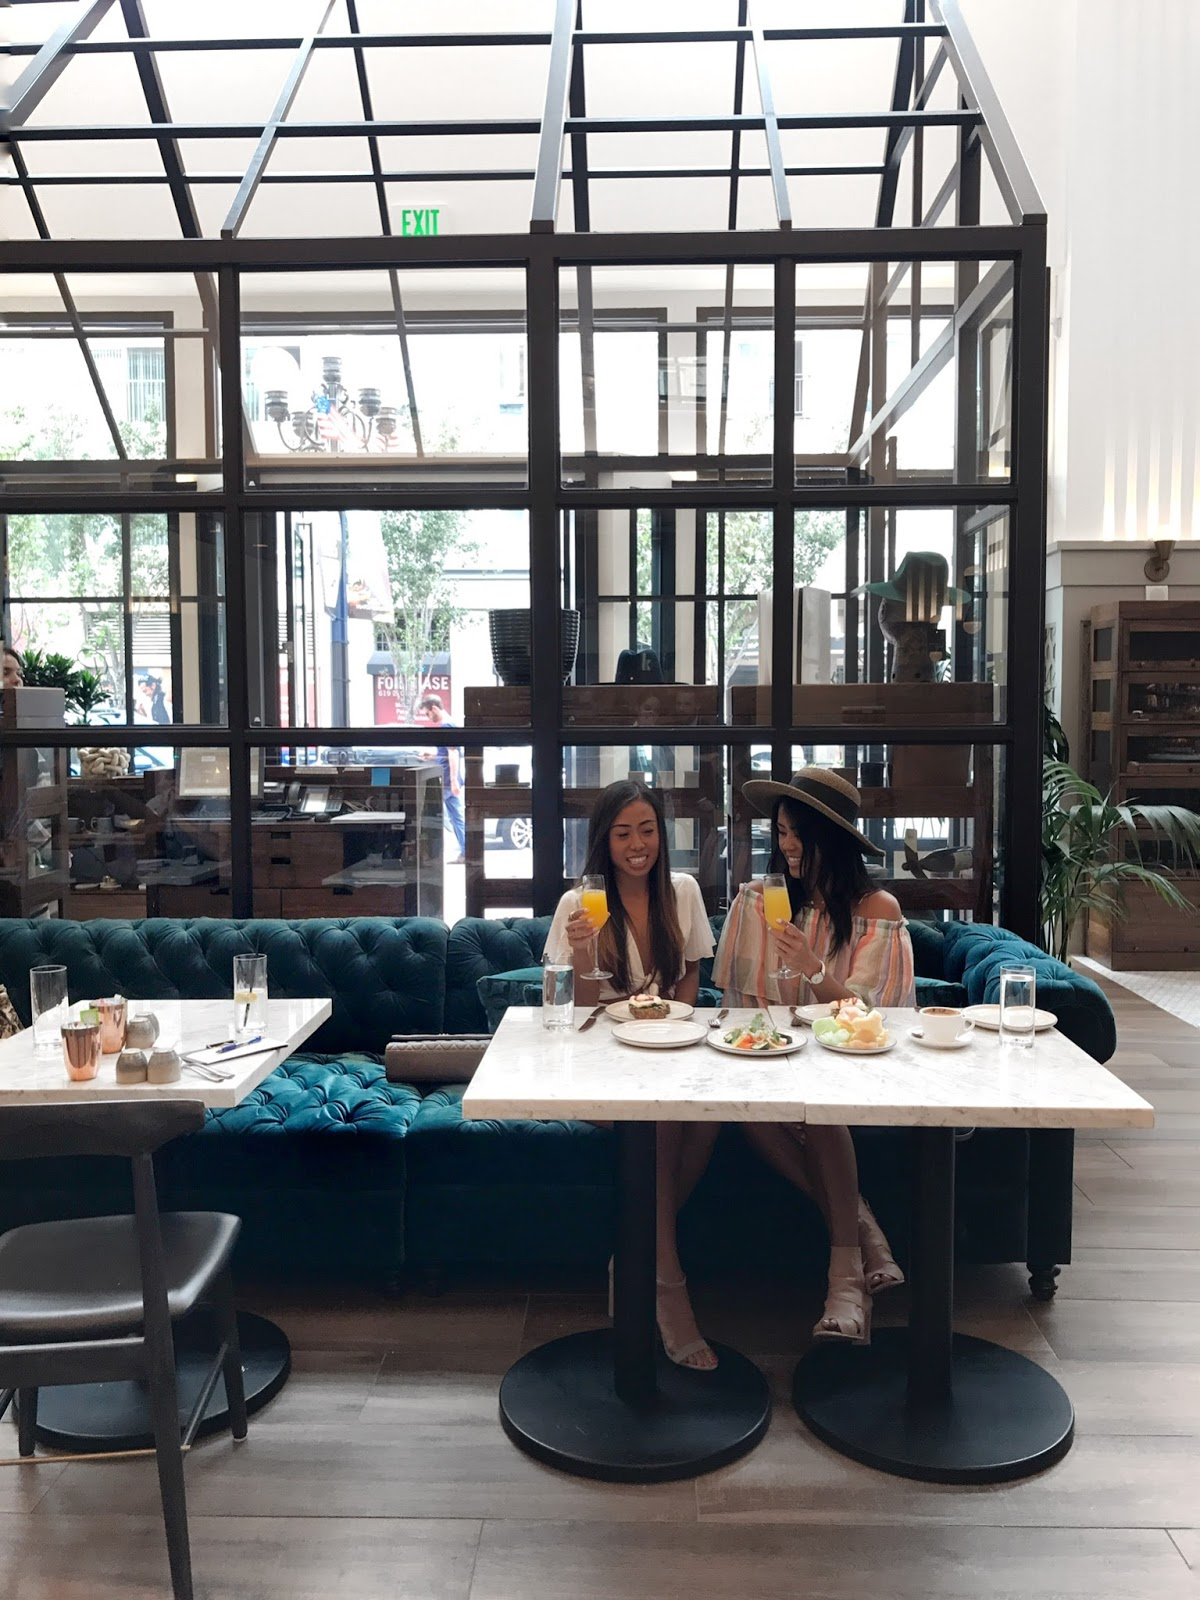 Pendry Hotel Review: Where To Stay In San Diego | Gypsy Tan